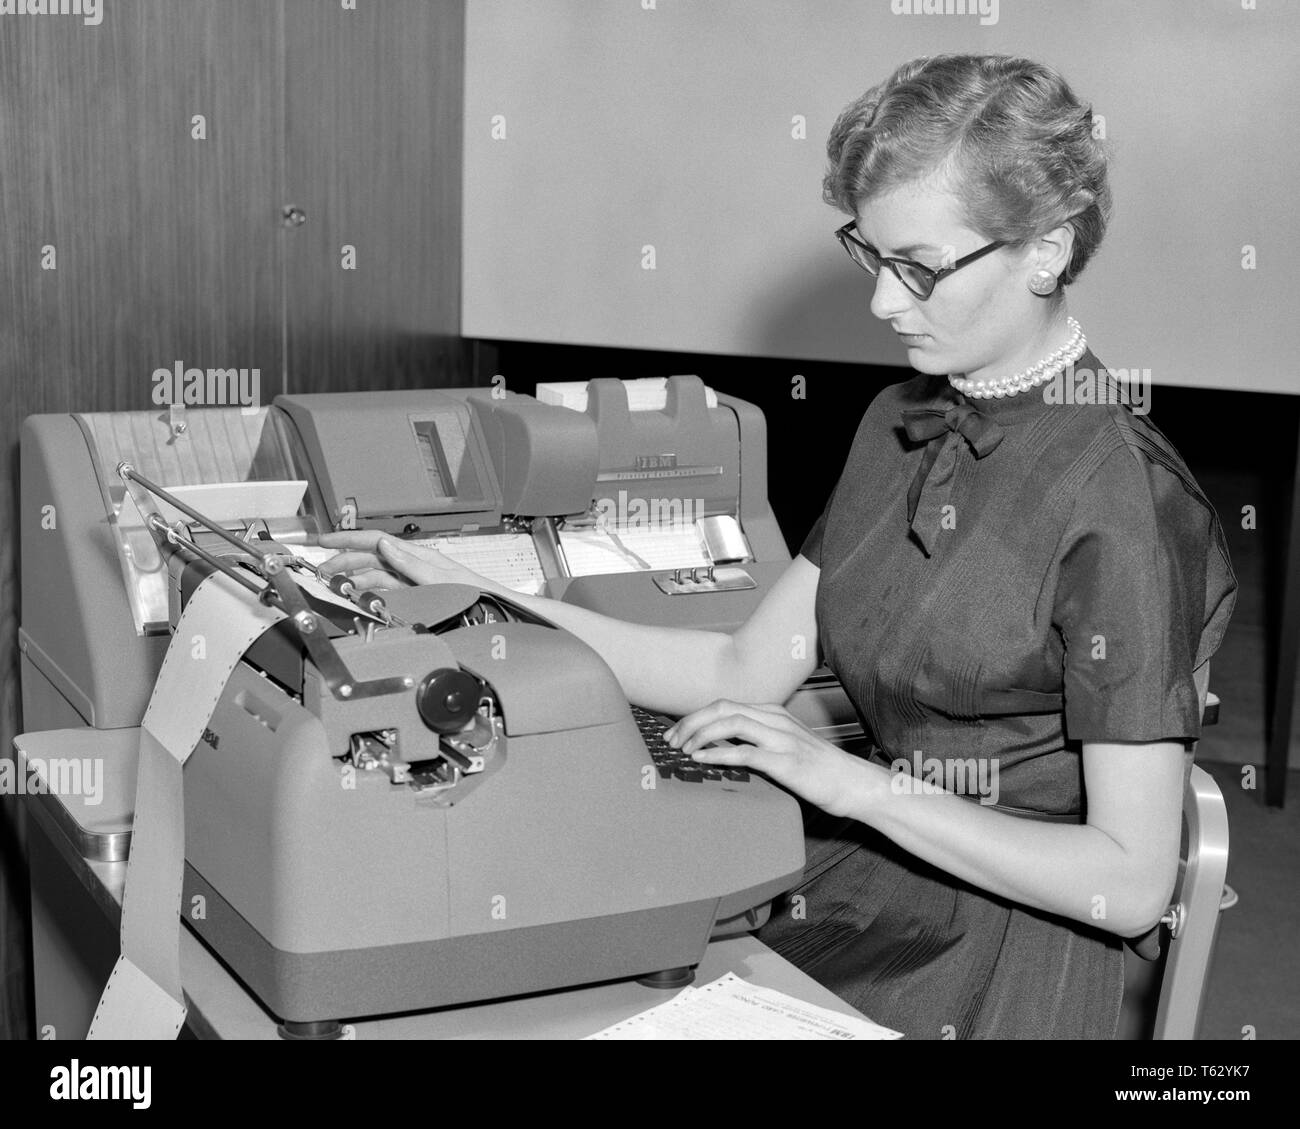 1950s WOMAN AT ELECTRIC TYPEWRITER CREATING DATA PROCESSING CARDS FOR IBM CARDATYPE ACCOUNTING SYSTEM - o1221 HAR001 HARS EYEGLASSES B&W DATA PROCESSING SKILL OCCUPATION SKILLS PROGRESS INNOVATION LABOR CREATING EMPLOYMENT OCCUPATIONS DATA ENTRY ACCOUNTING SECRETARIES EMPLOYEE ENTRY KEY PUNCH MID-ADULT MID-ADULT WOMAN BLACK AND WHITE CAUCASIAN ETHNICITY CLERICAL HAR001 LABORING OLD FASHIONED - Stock Image